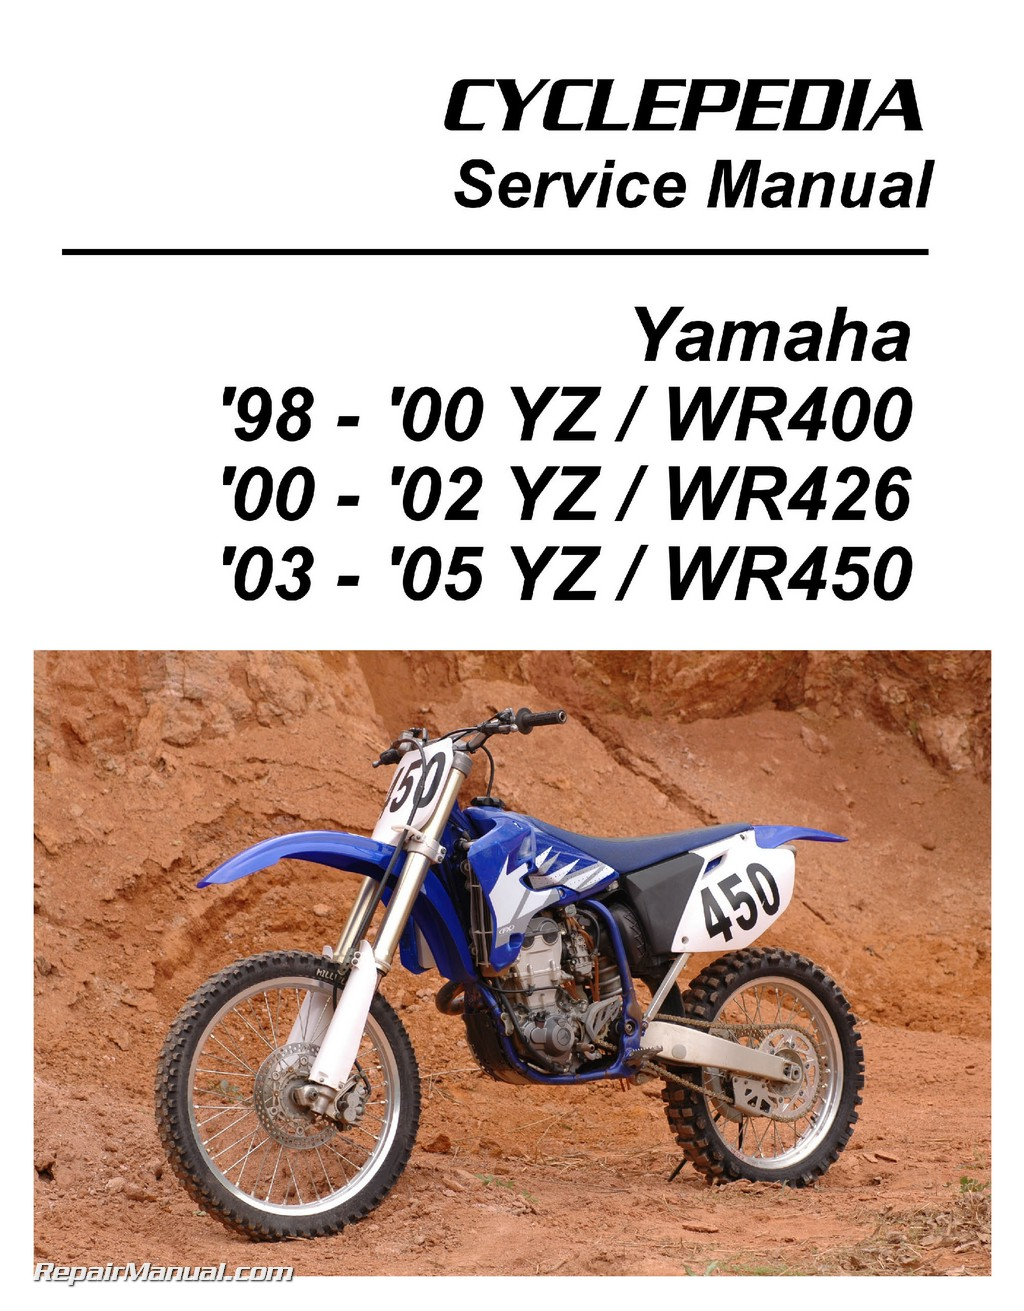 yamaha yz wr 400 426 450f cyclepedia printed motorcycle service manual rh repairmanual com Yamaha Motorcycle Parts Yamaha Motorcycle Parts